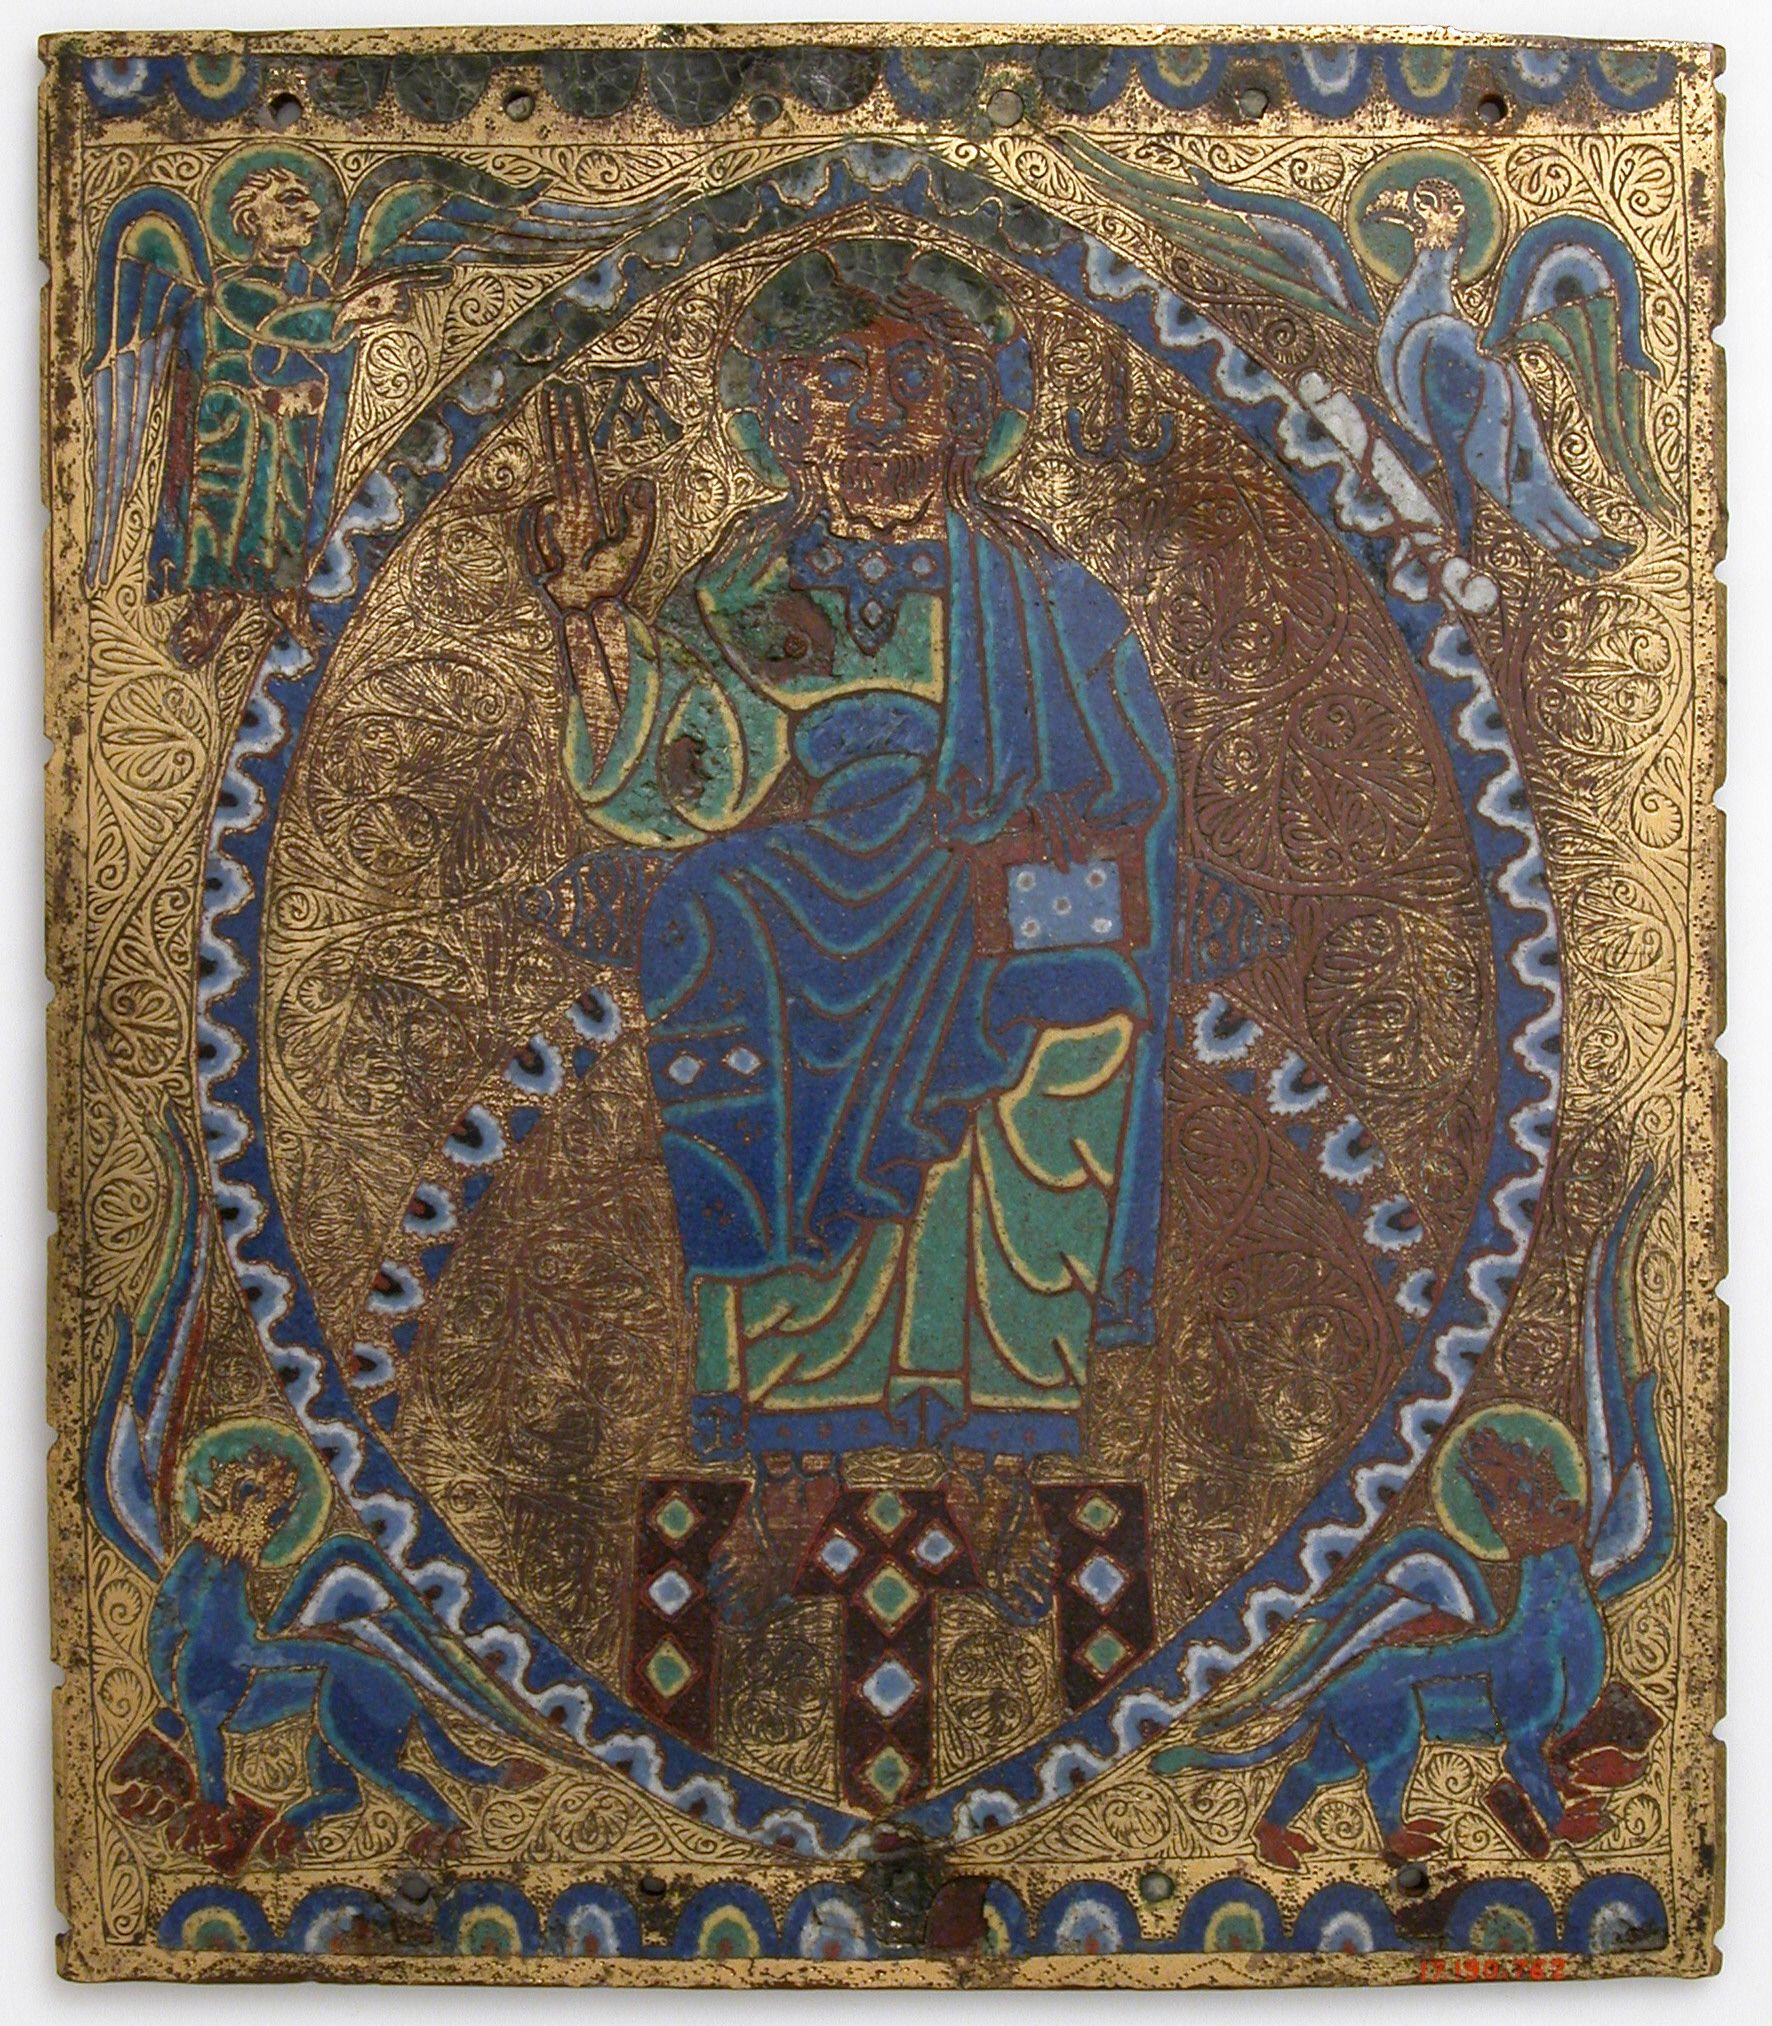 Plaque of Christ in Majesty Date 12th13th century